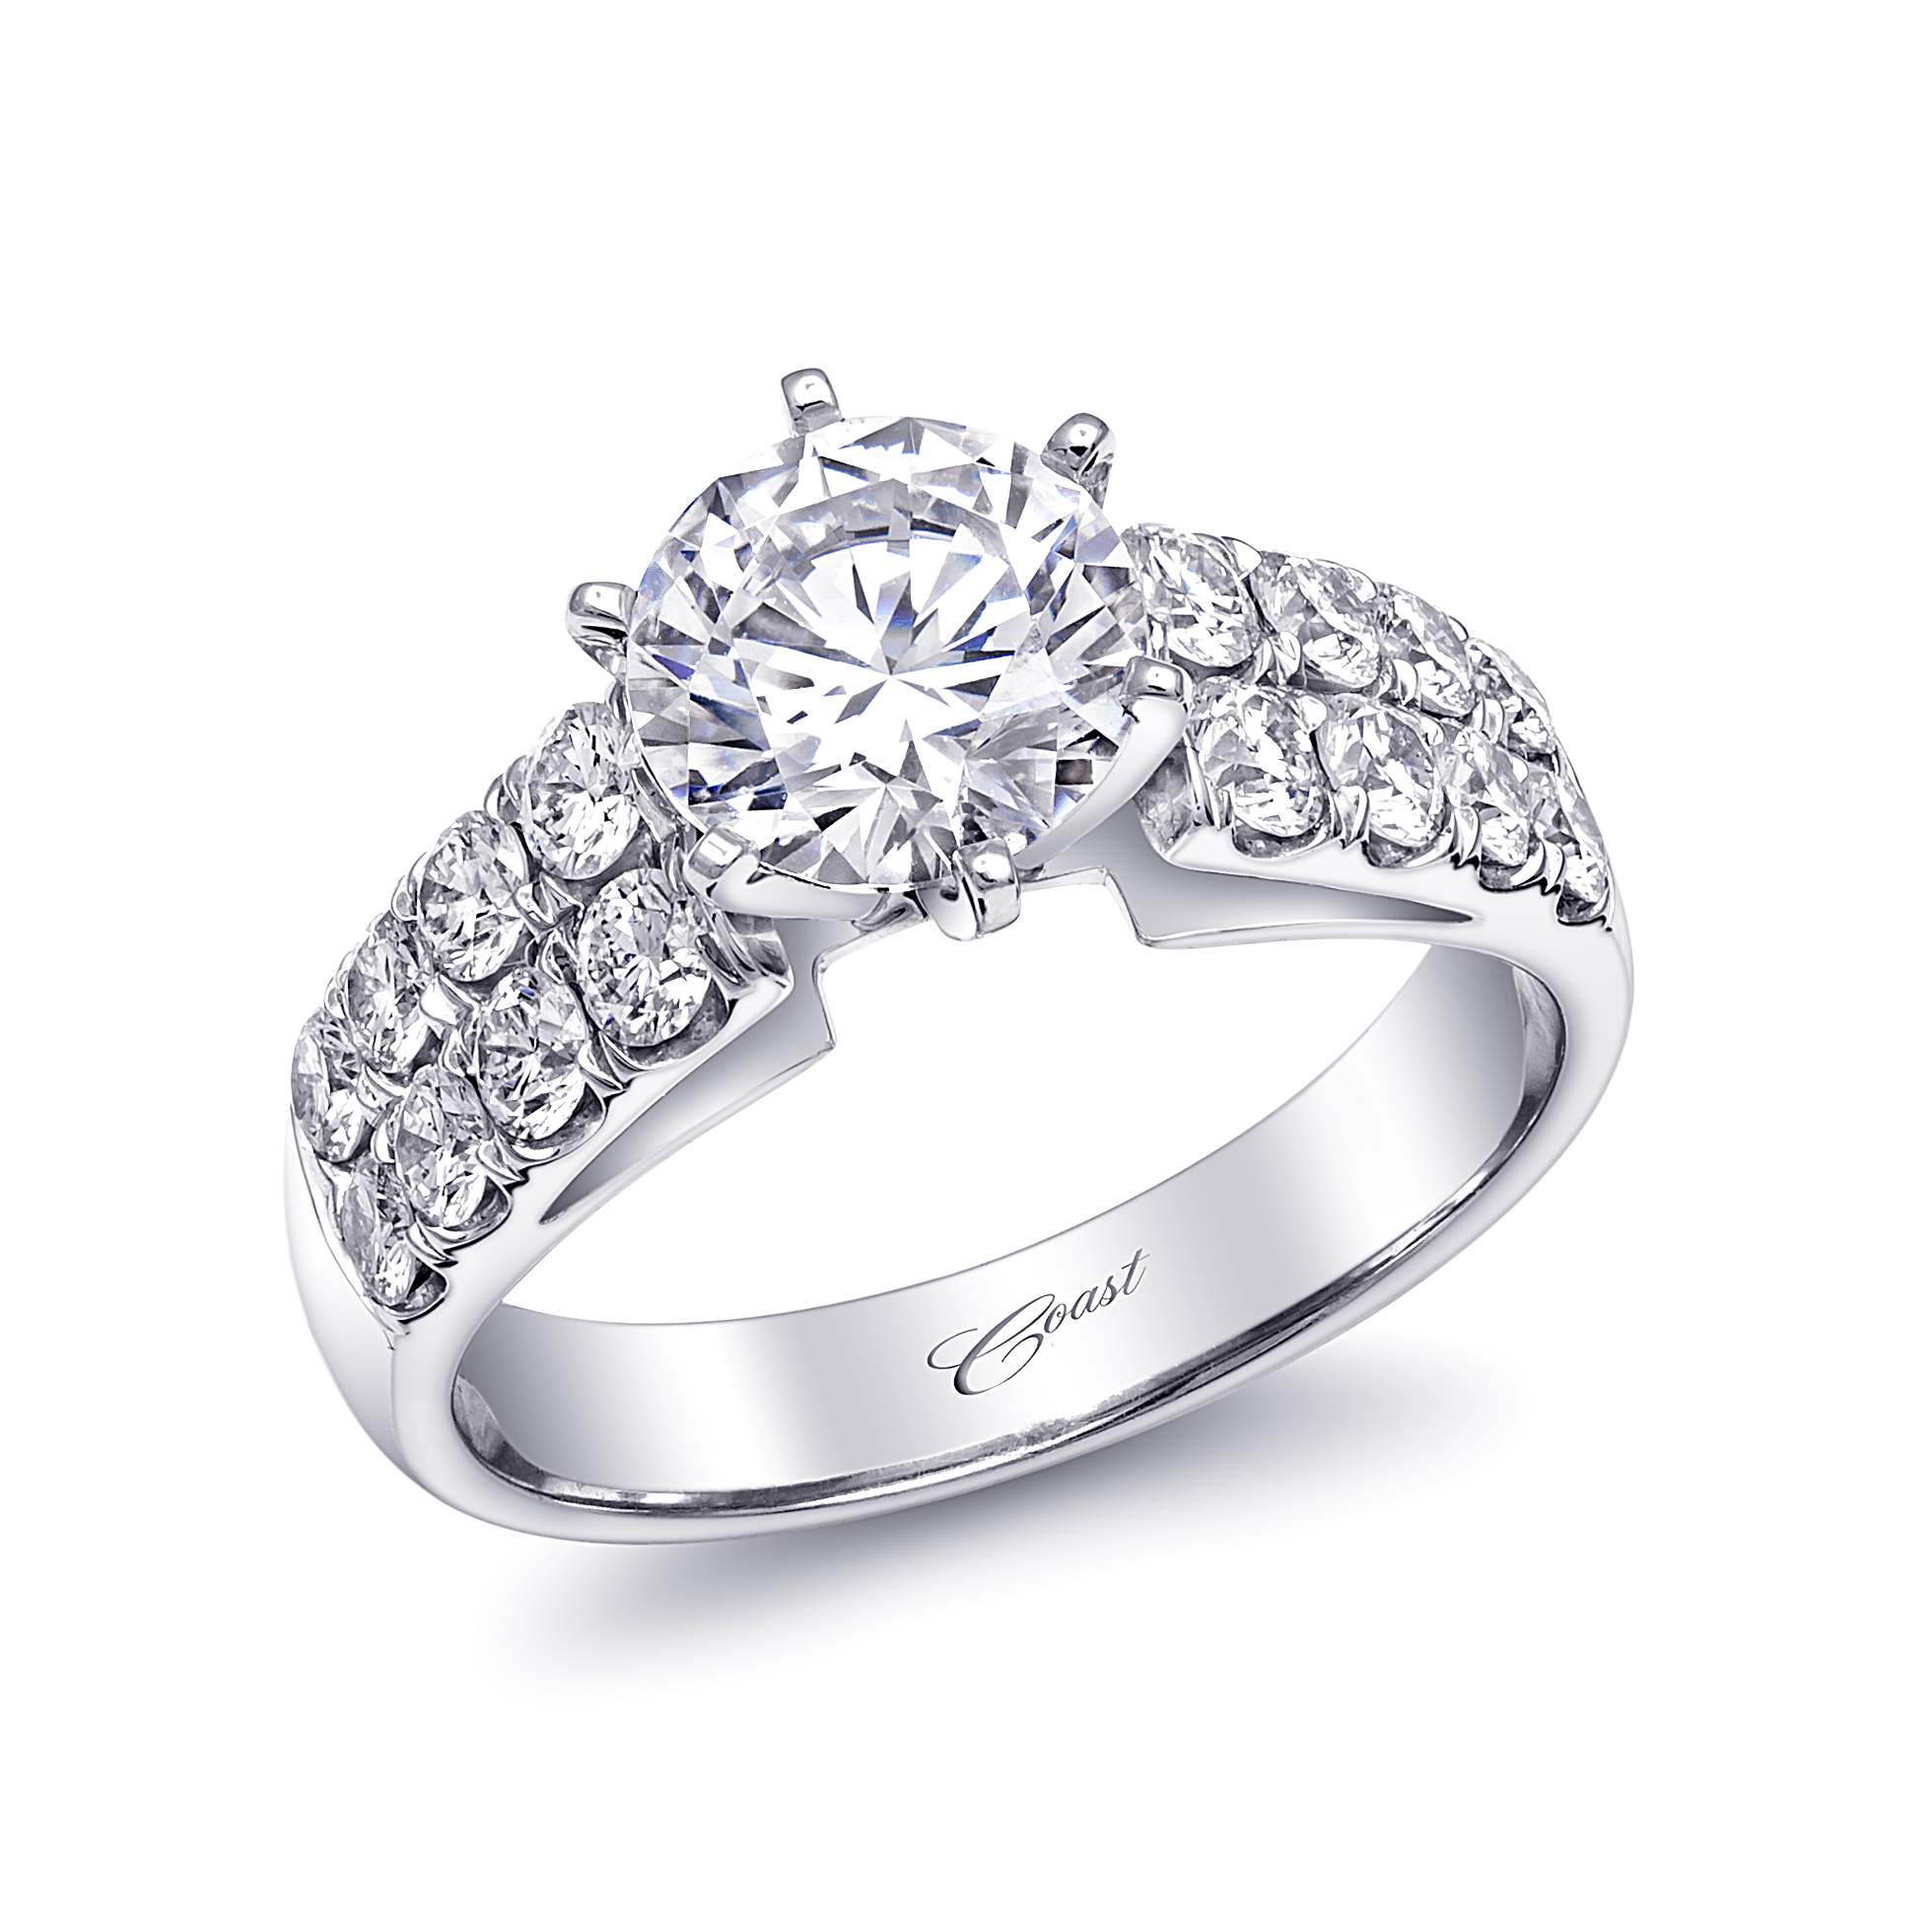 Charisma Engagement Ring - Double Row Diamond Shank